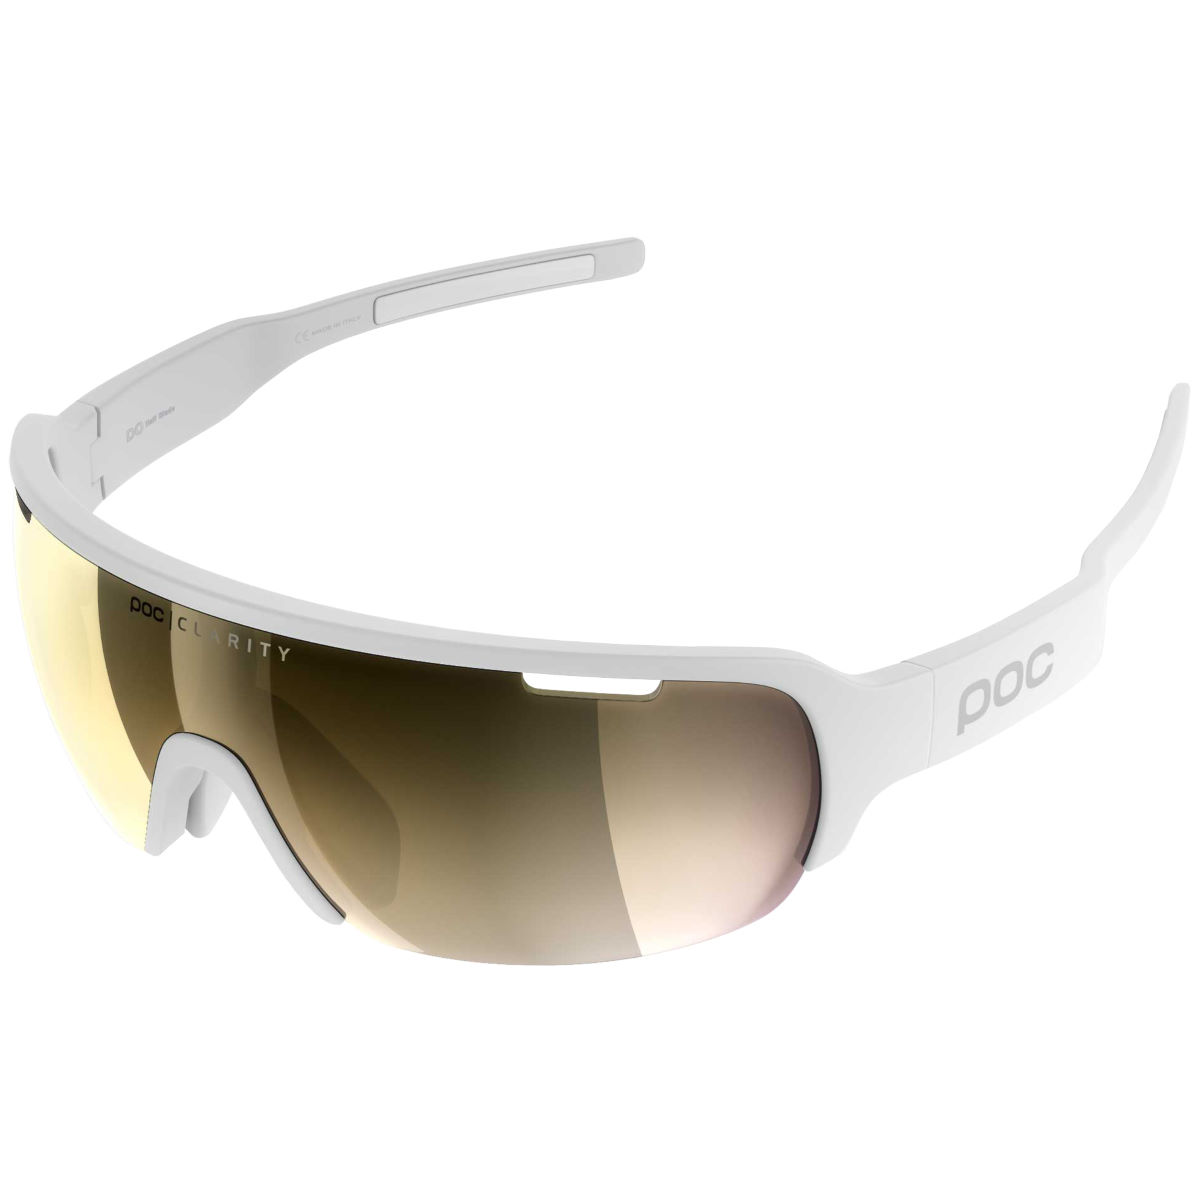 Poc Do Half Blade Clarity Avip Sunglasses - One Size White/white